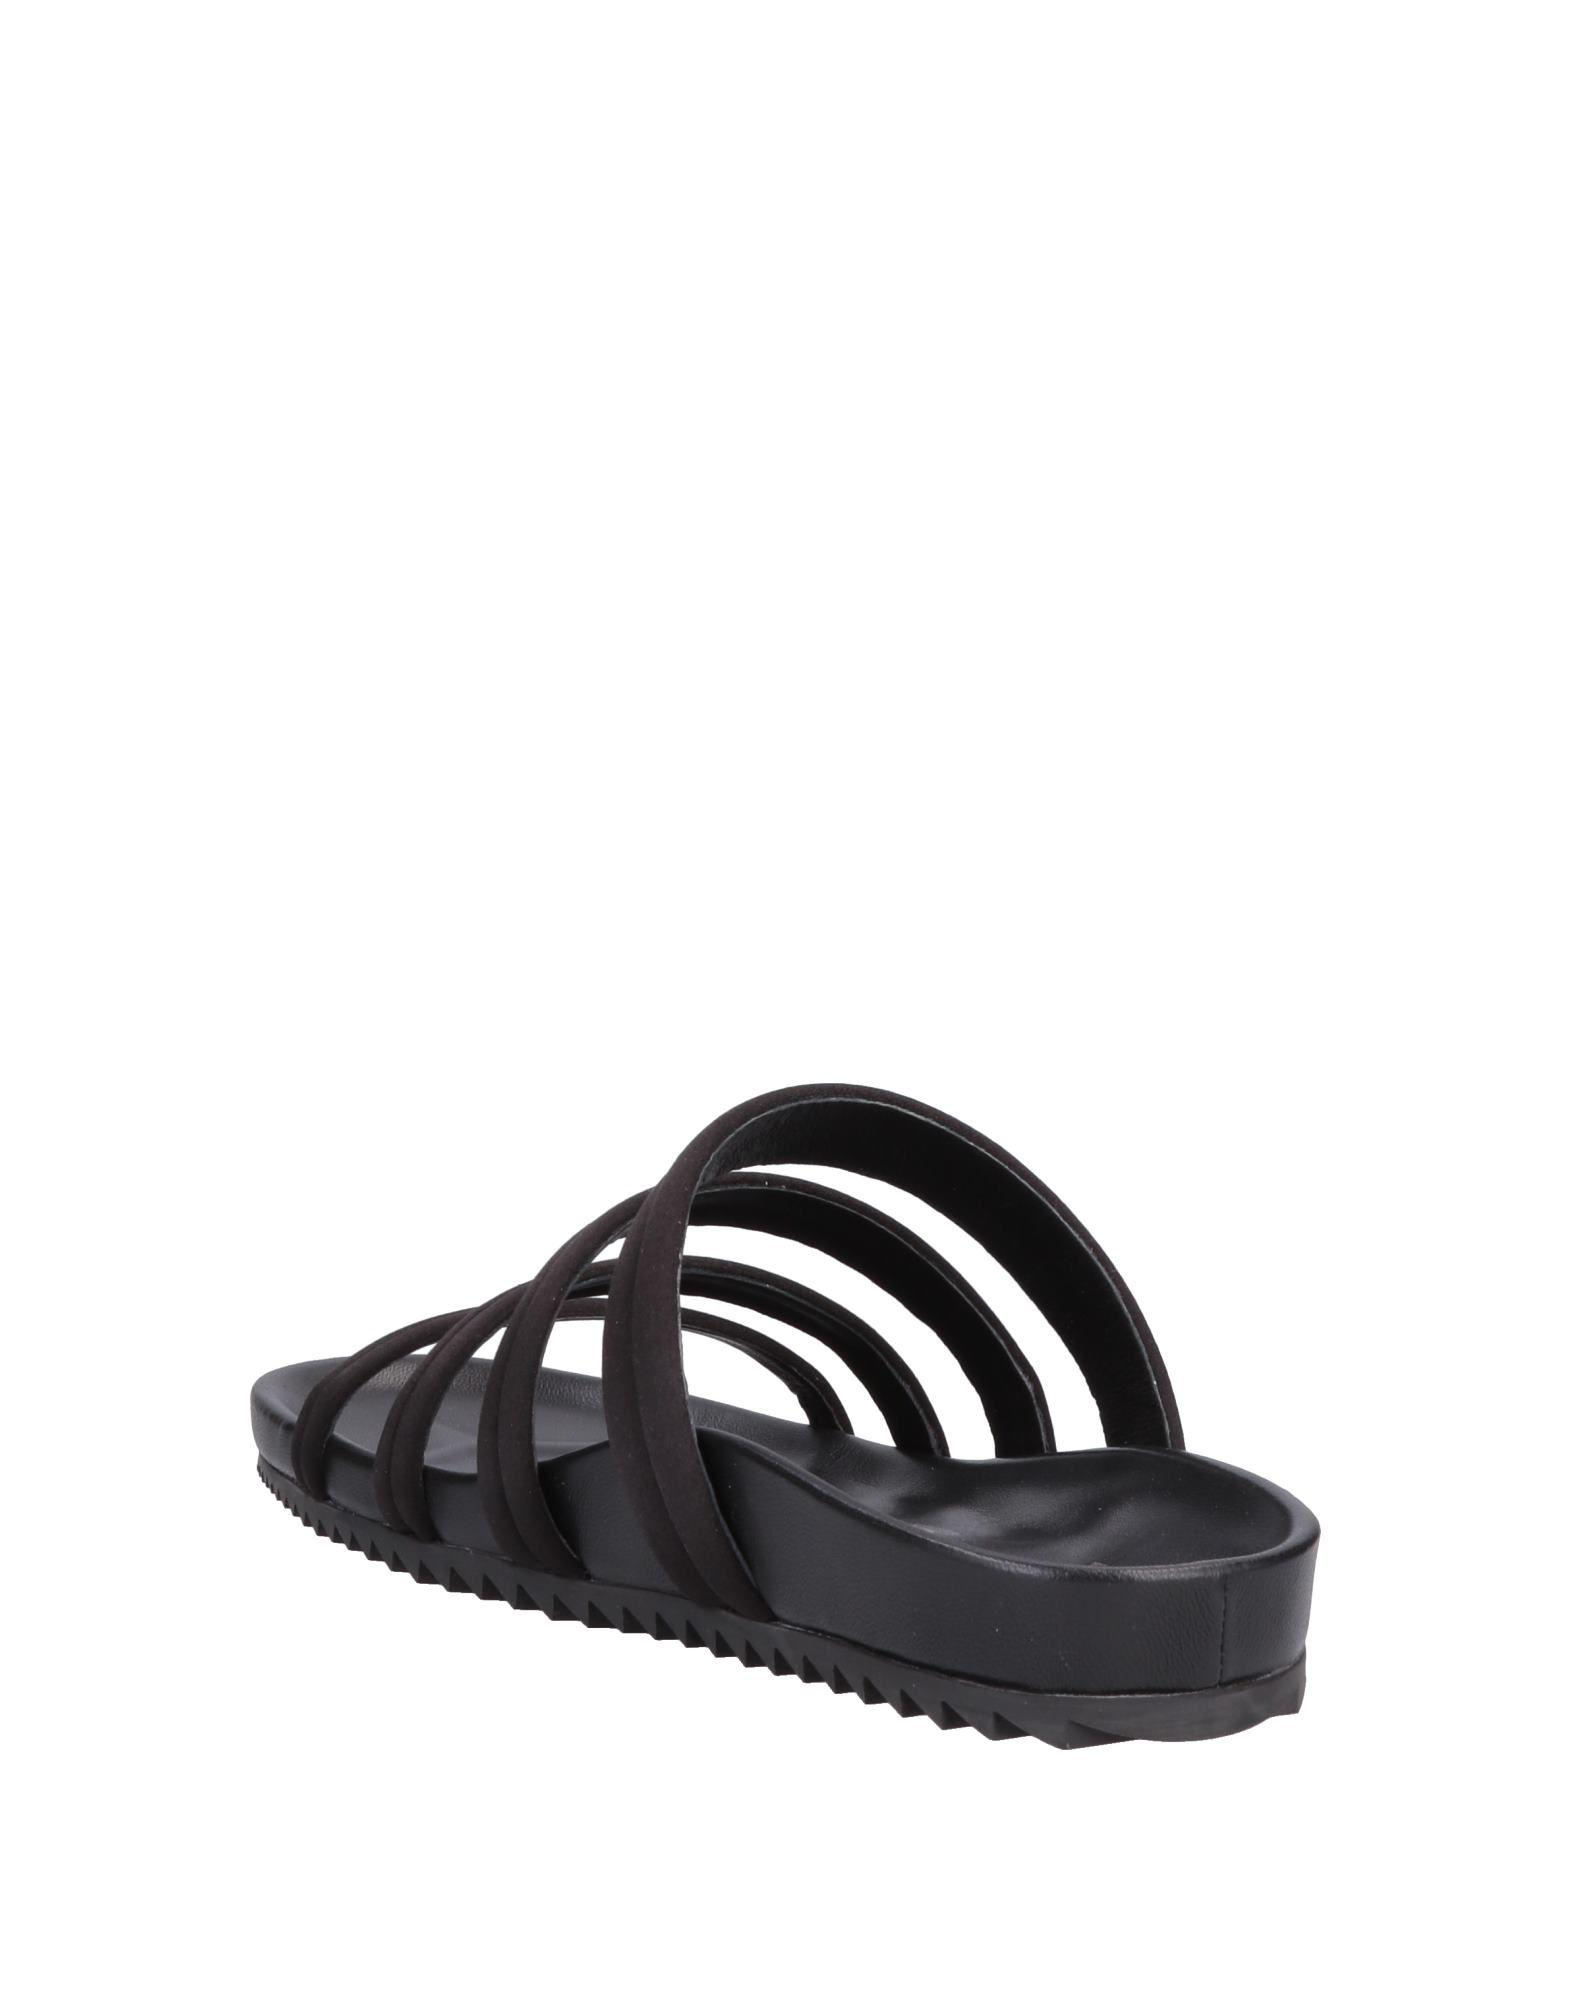 0763addb8814 Lyst - Pedro Garcia Sandals in Black